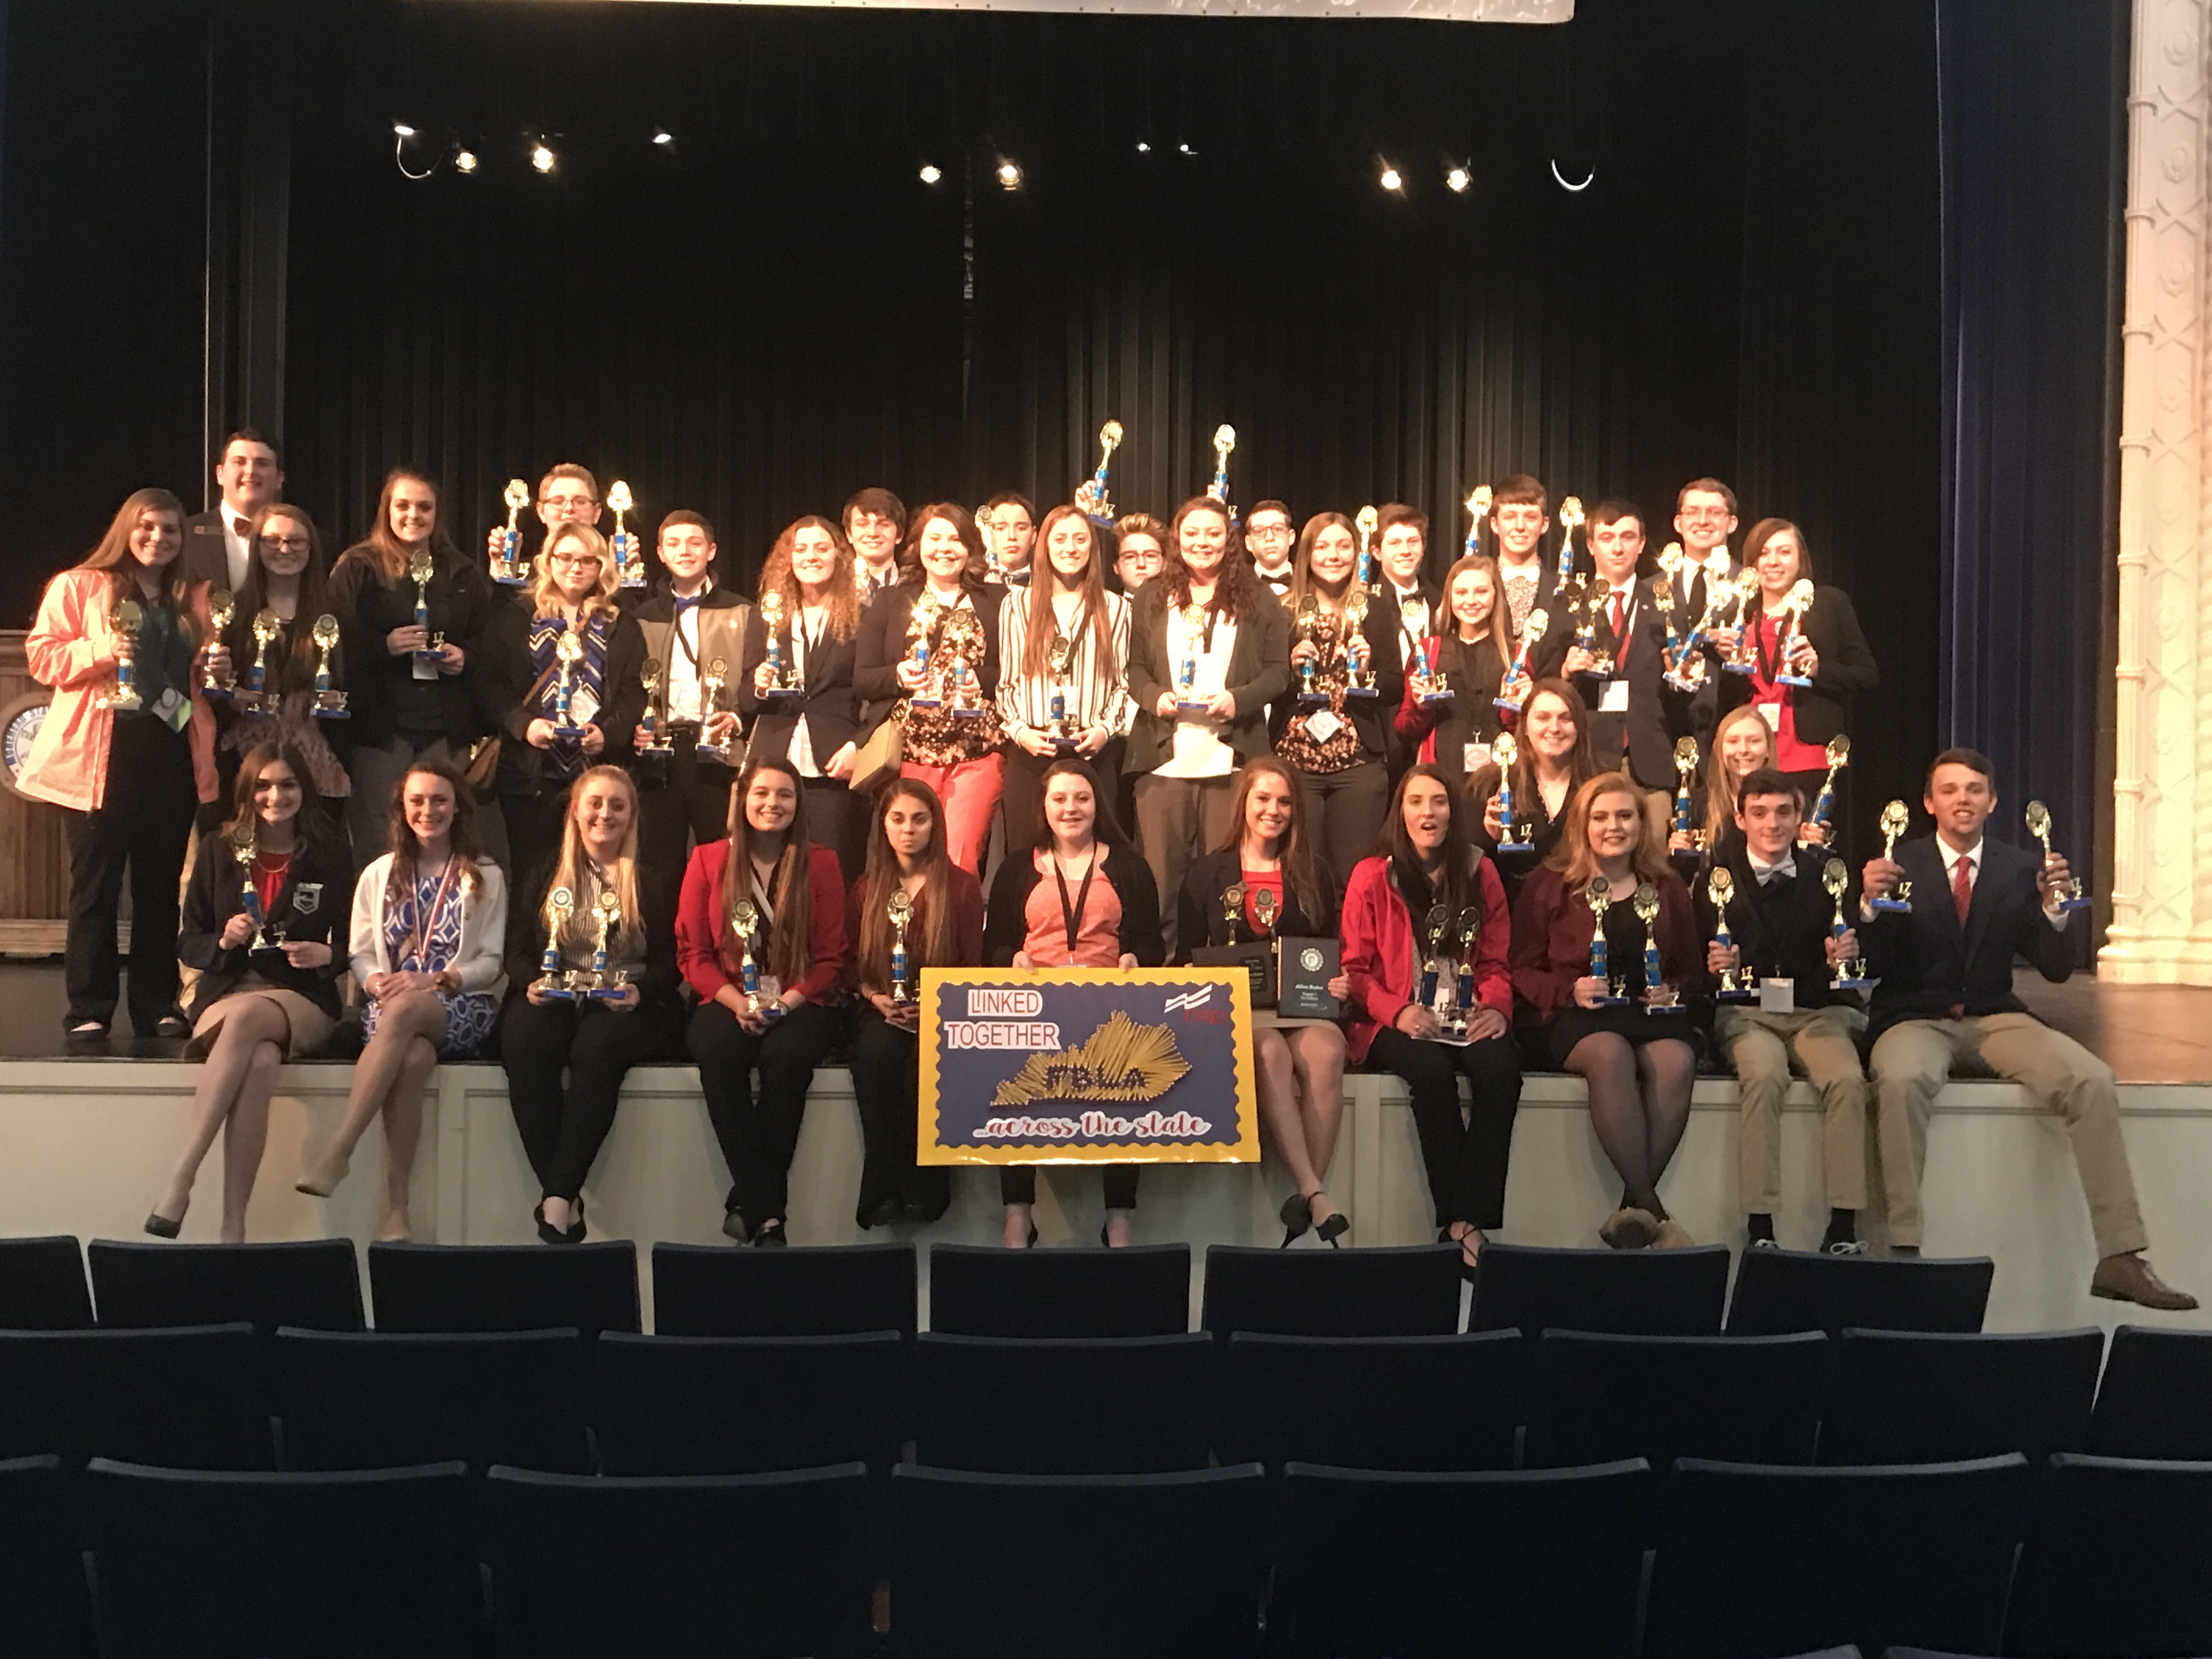 Nicholas County FBLA - 2017 Regional Leadership Conference